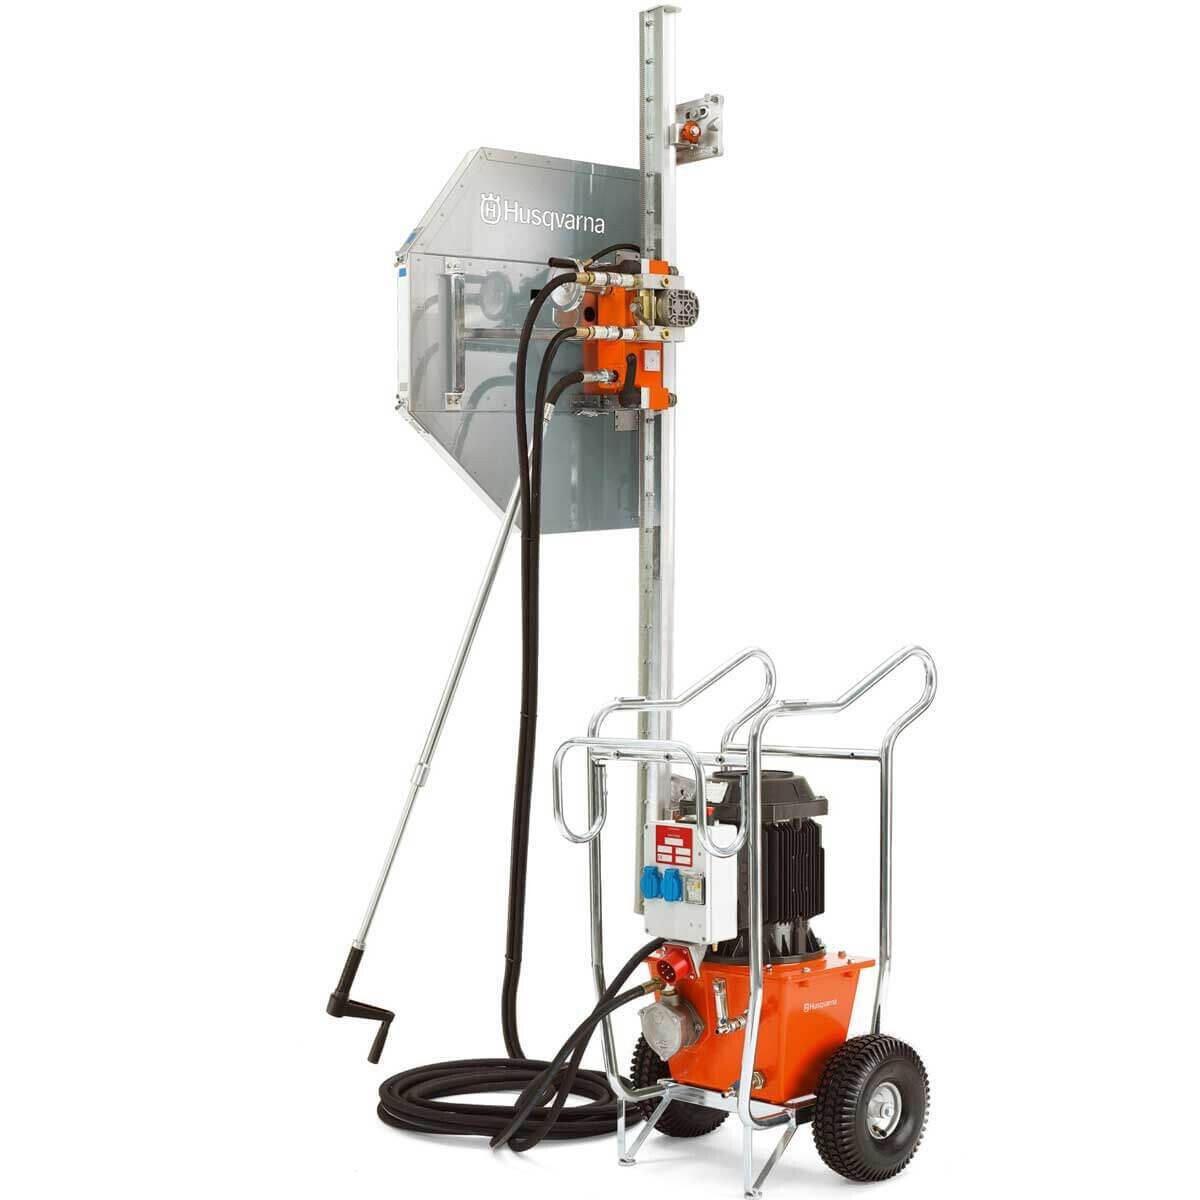 Electric Hydraulic Power Pack by Husqvarna